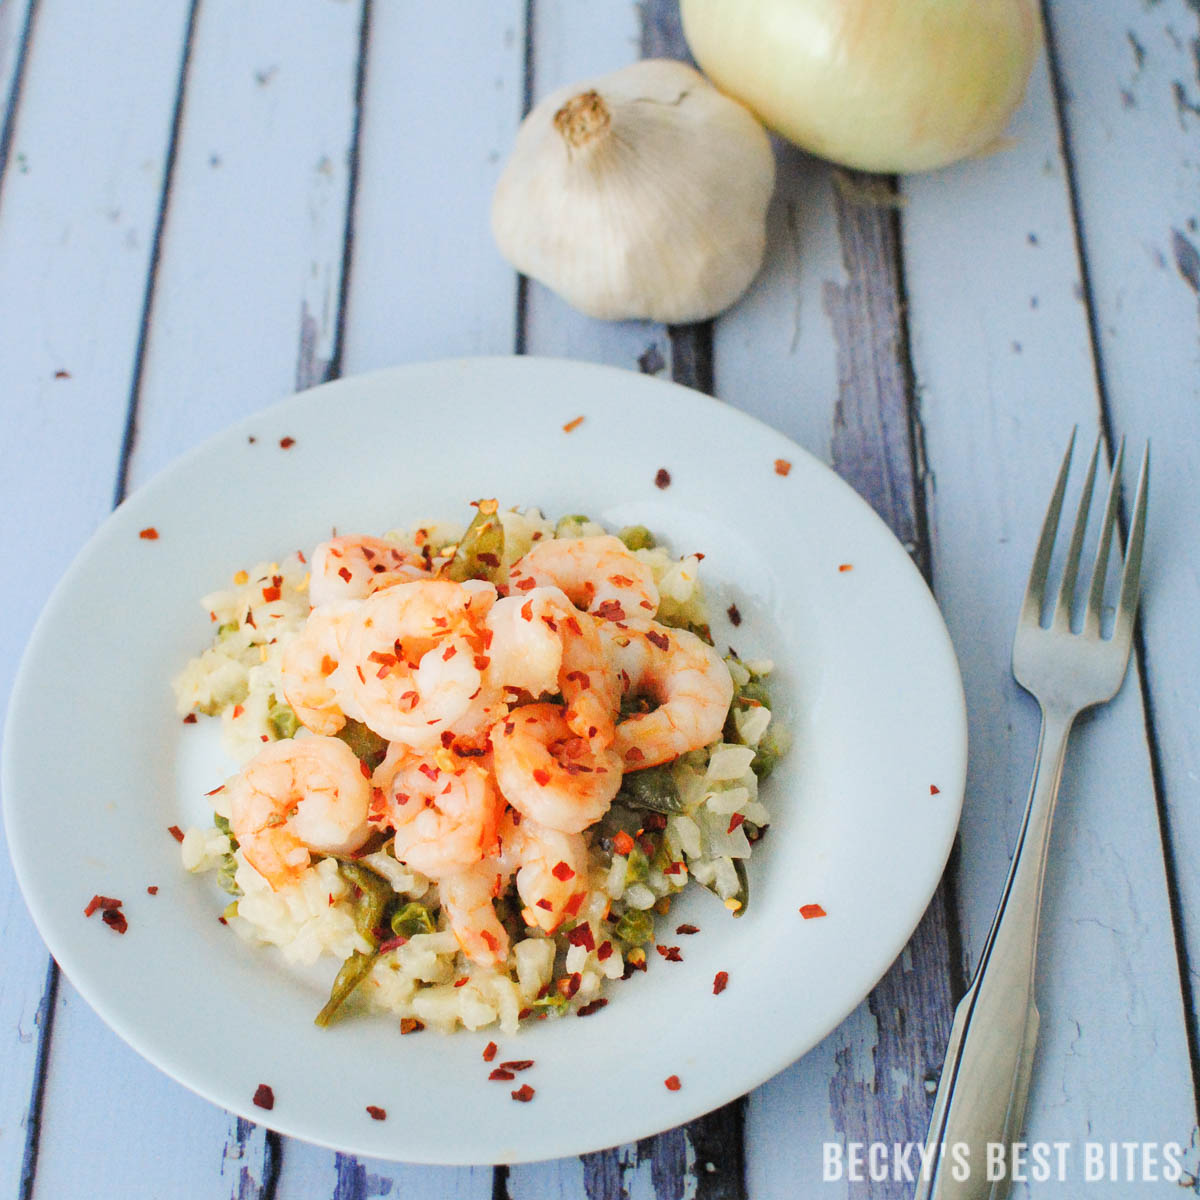 Spicy Shrimp Scampi Risotto with Garden Fresh Peas is made without butter or cheese for a healthy dinner recipe easy enough for any weekday night but yummy enough for any special meal. | beckysbestbites.com